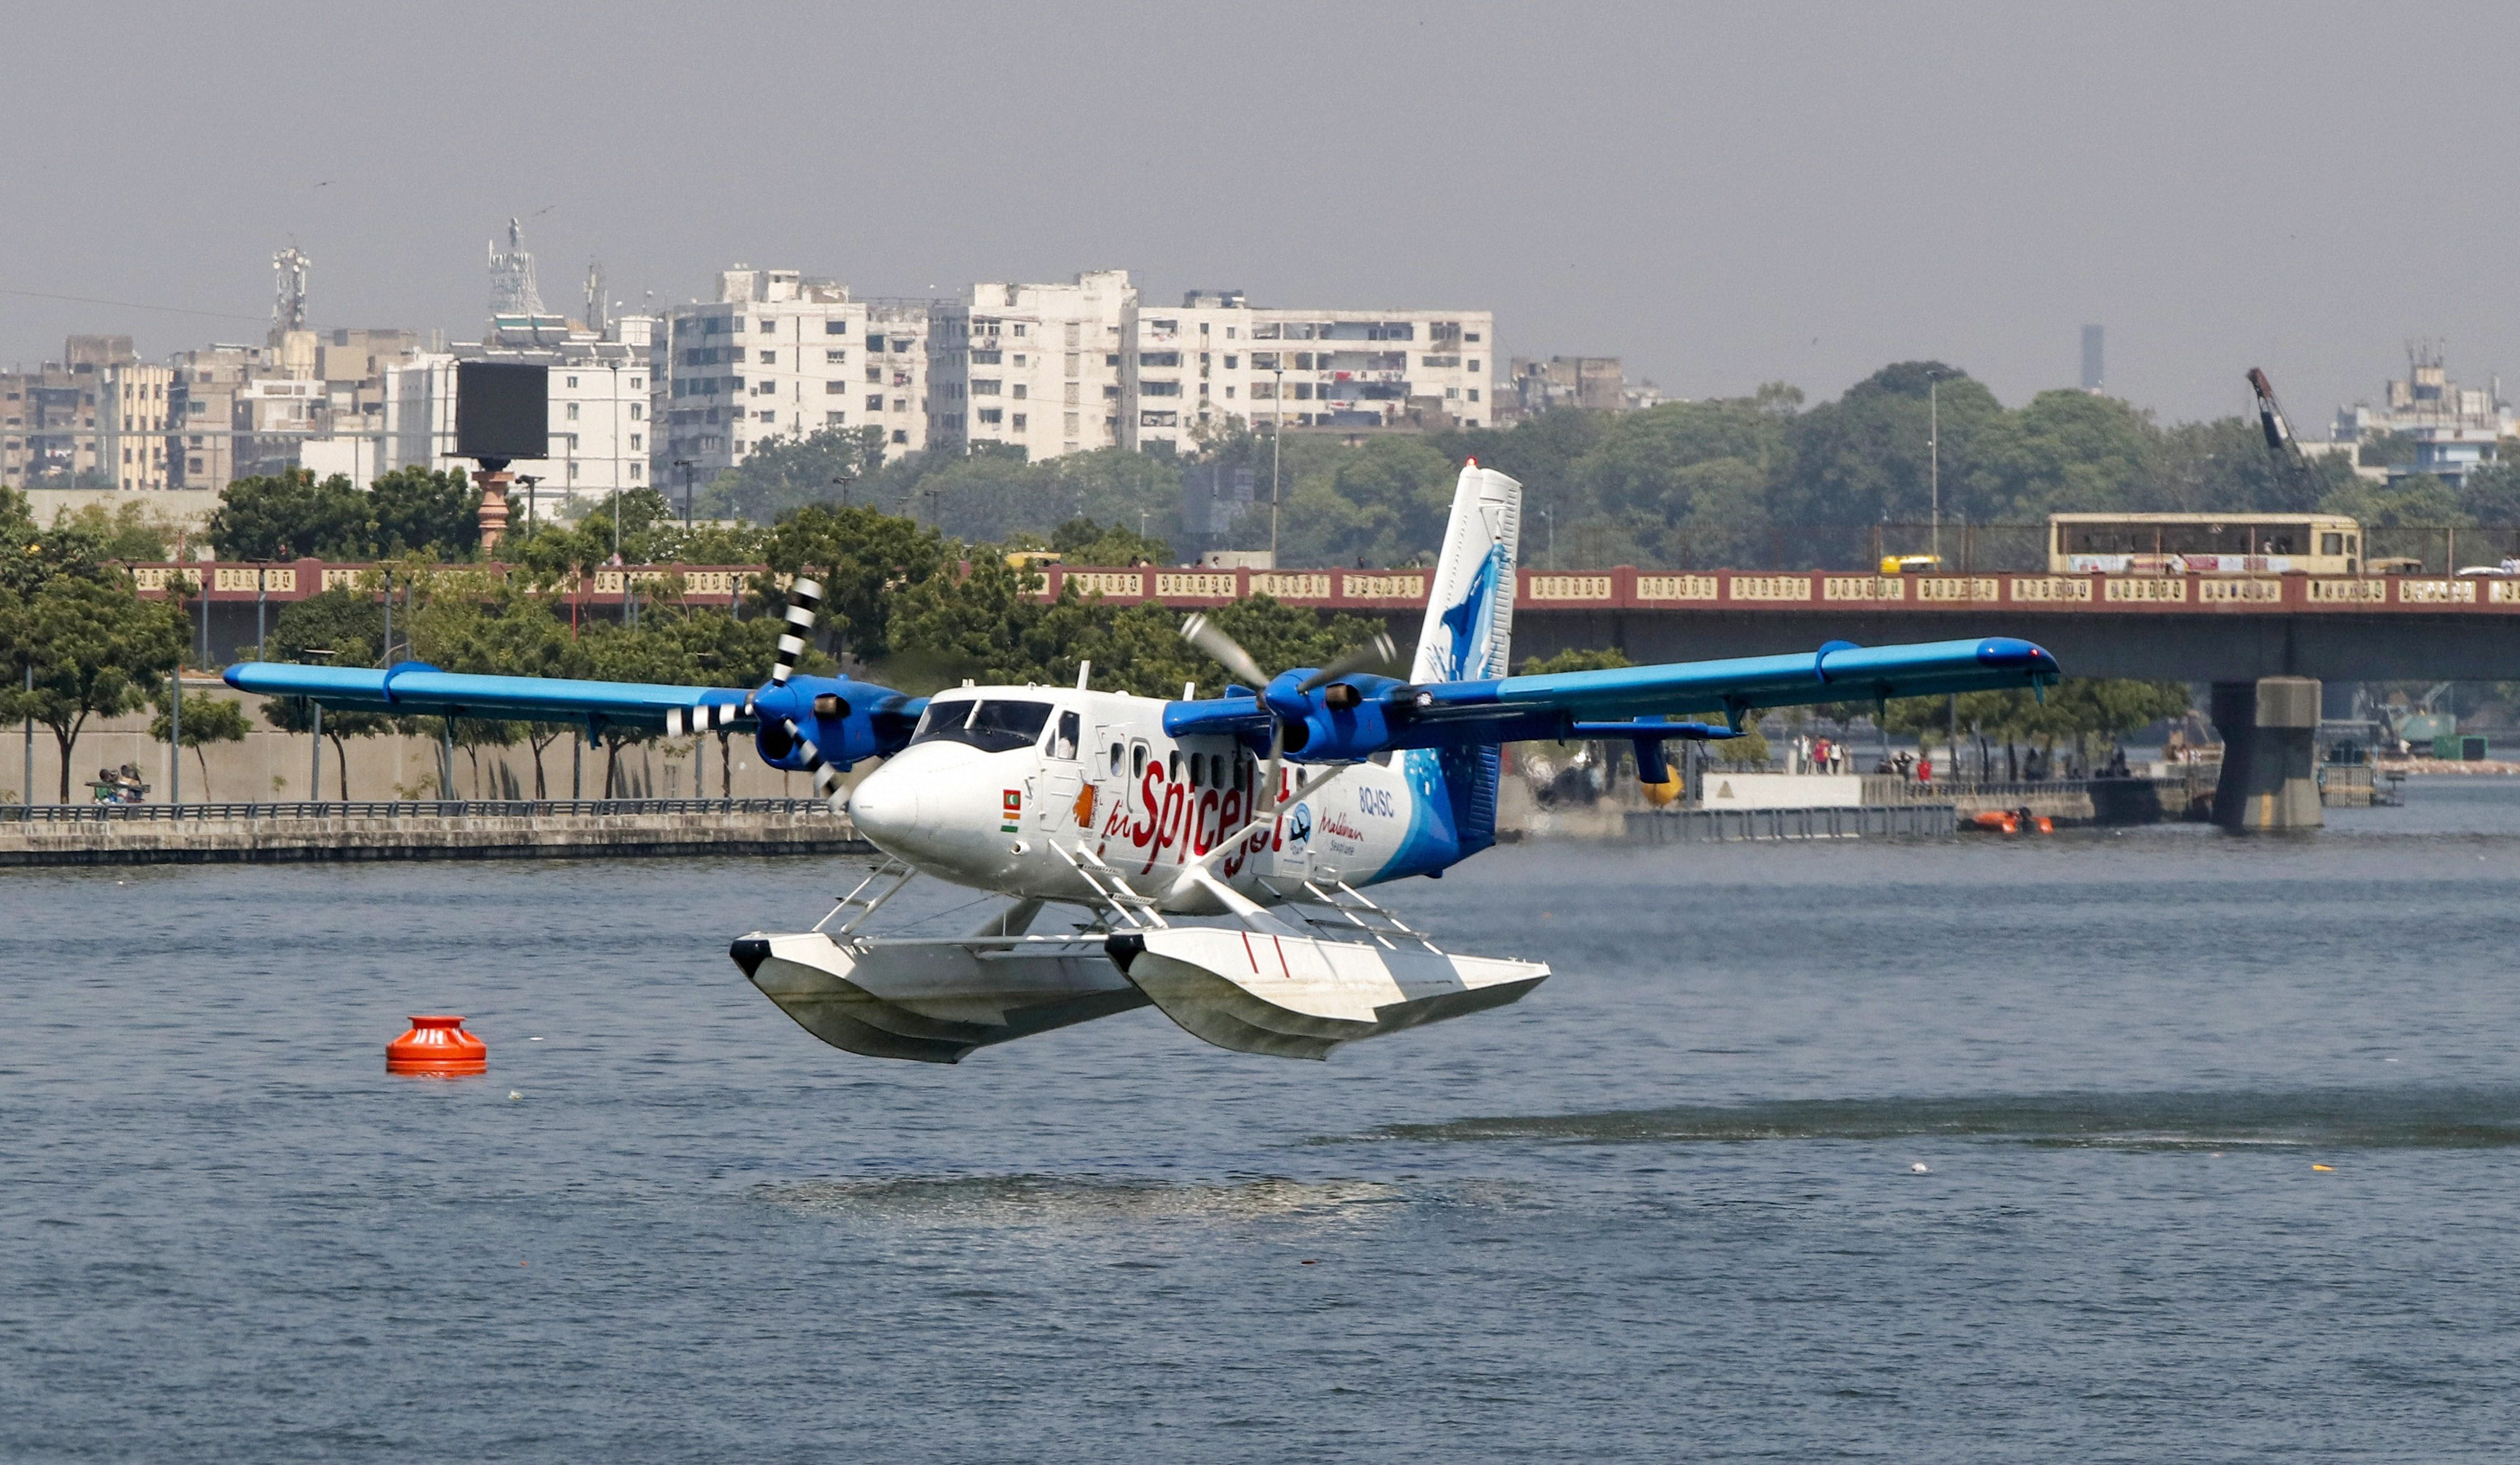 PM Modi to Launch Seaplane Service From Ahmedabad to Statue of Unity  (Kevadia) Today in Major Push to India